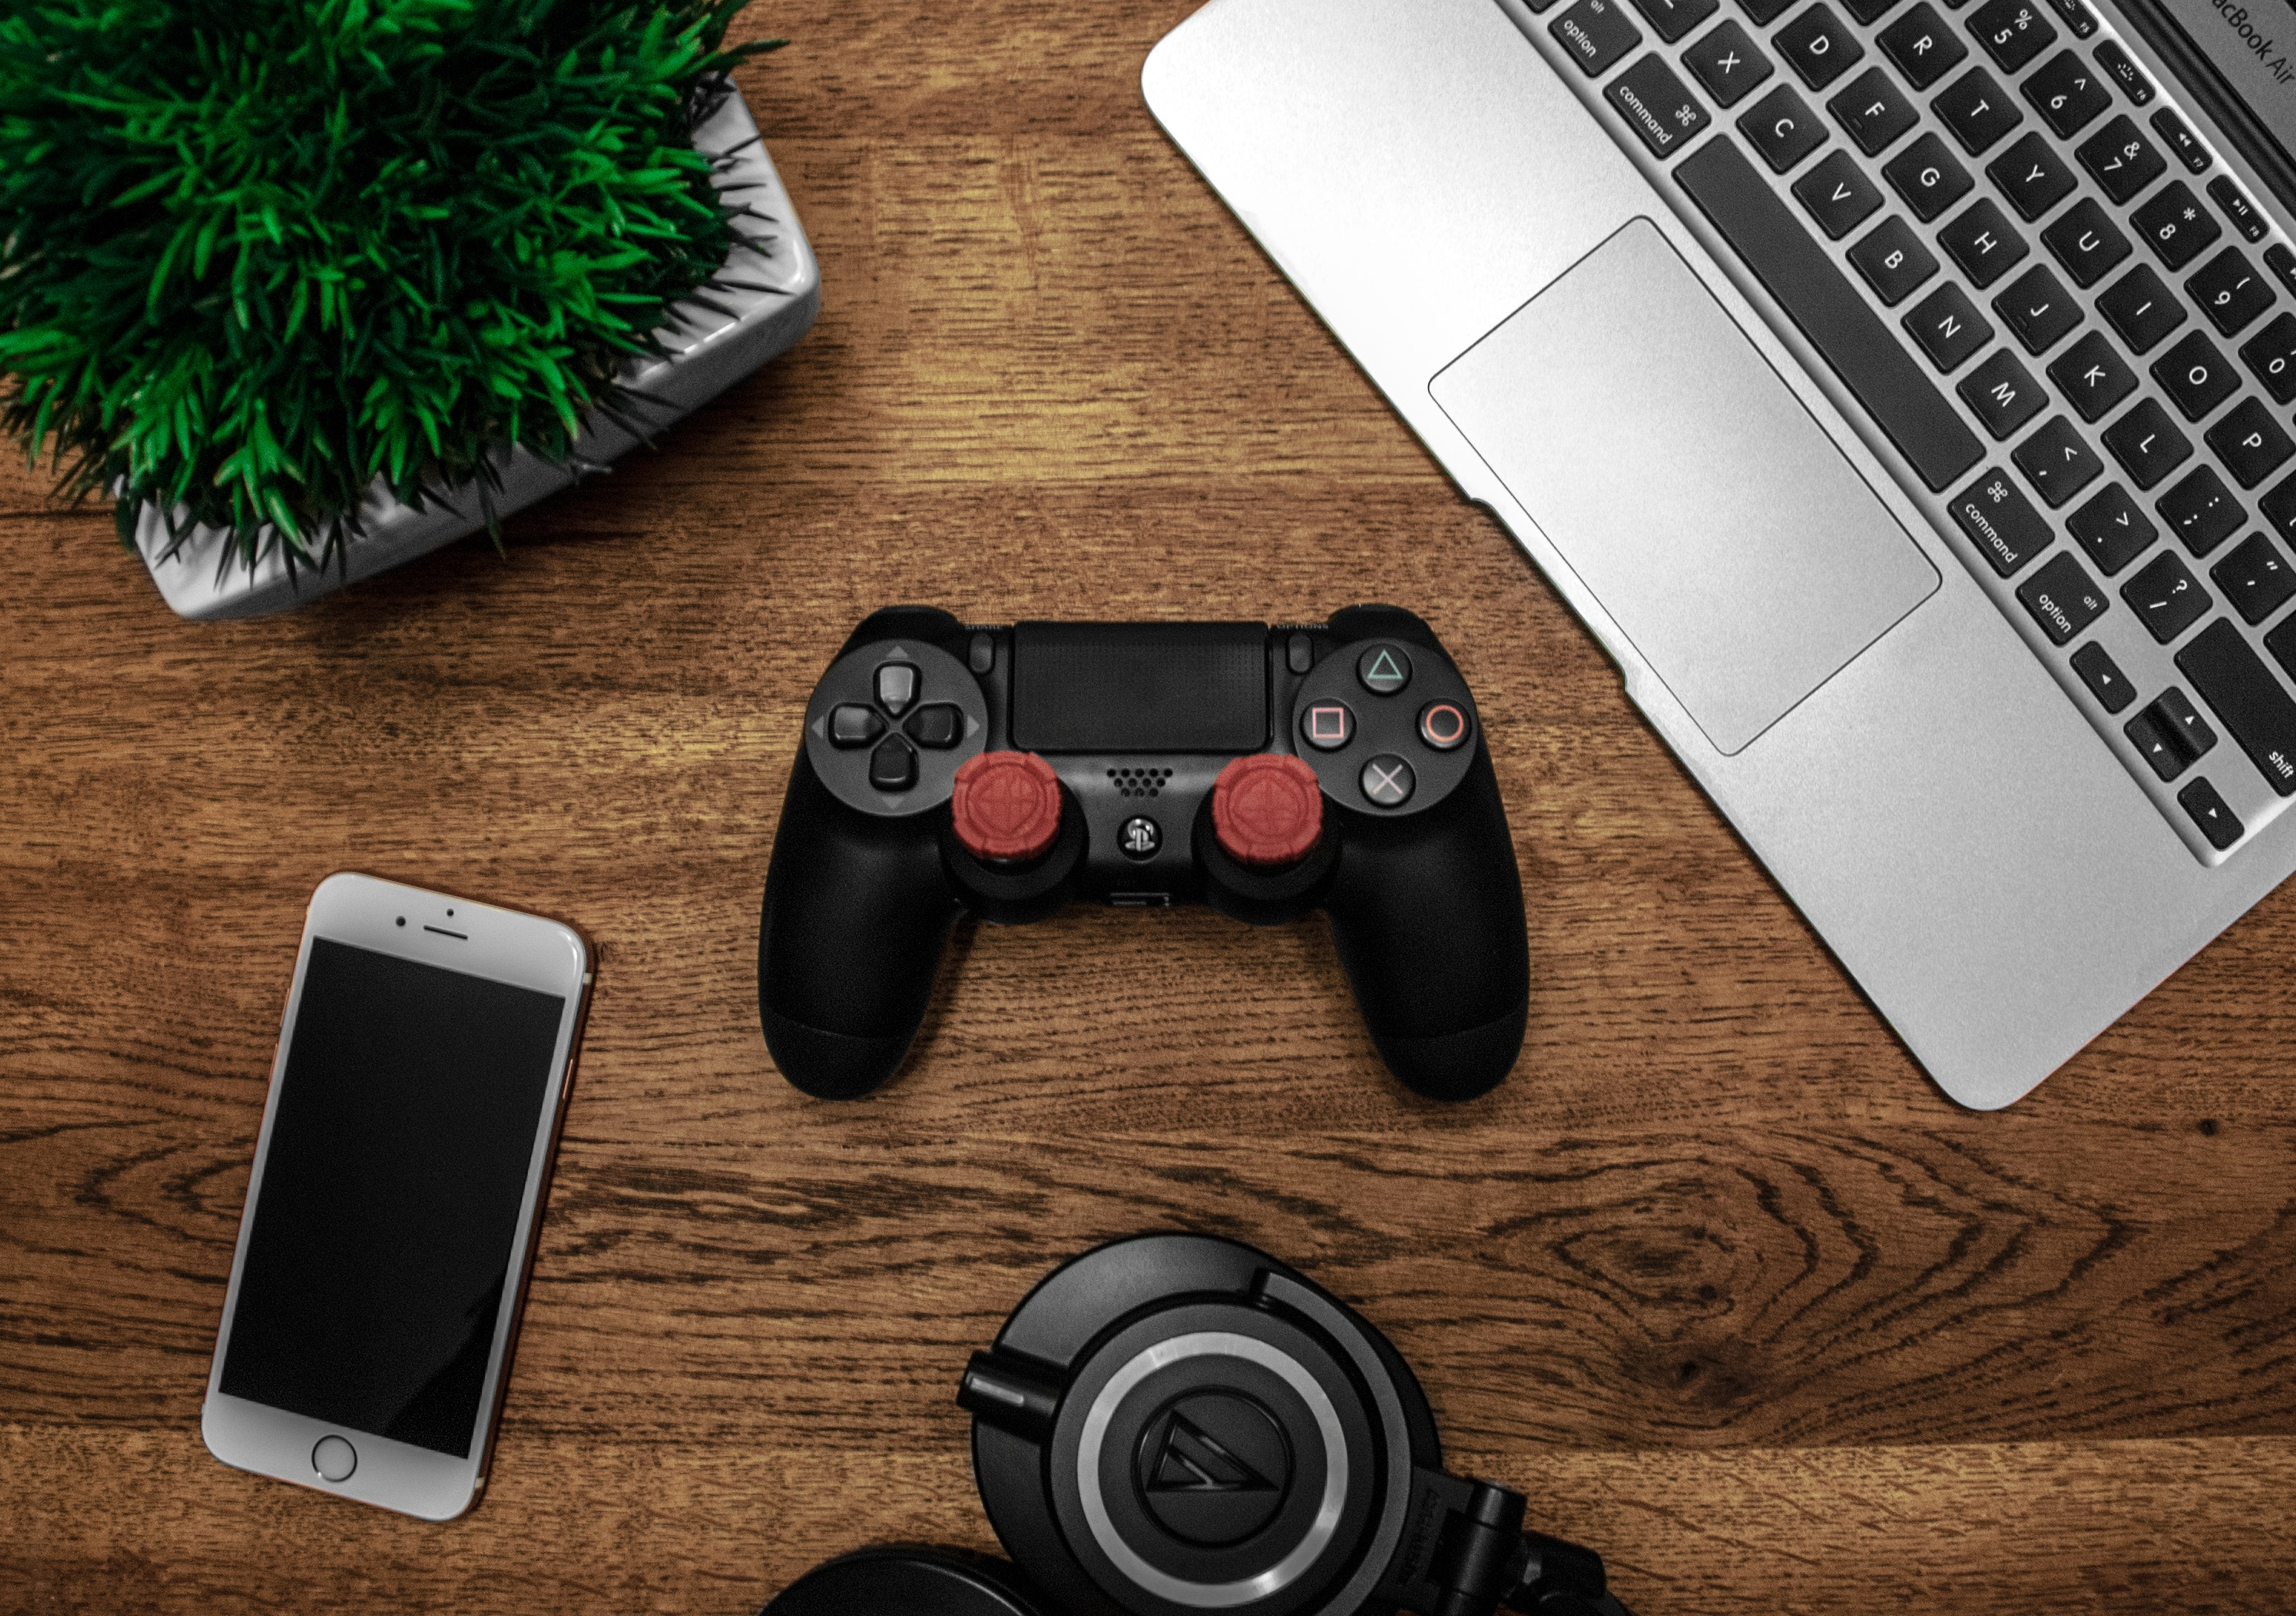 Silver macbook beside black sony ps4 dualshock 4, silver iphone 6, and round black keychain on brown wooden table photo